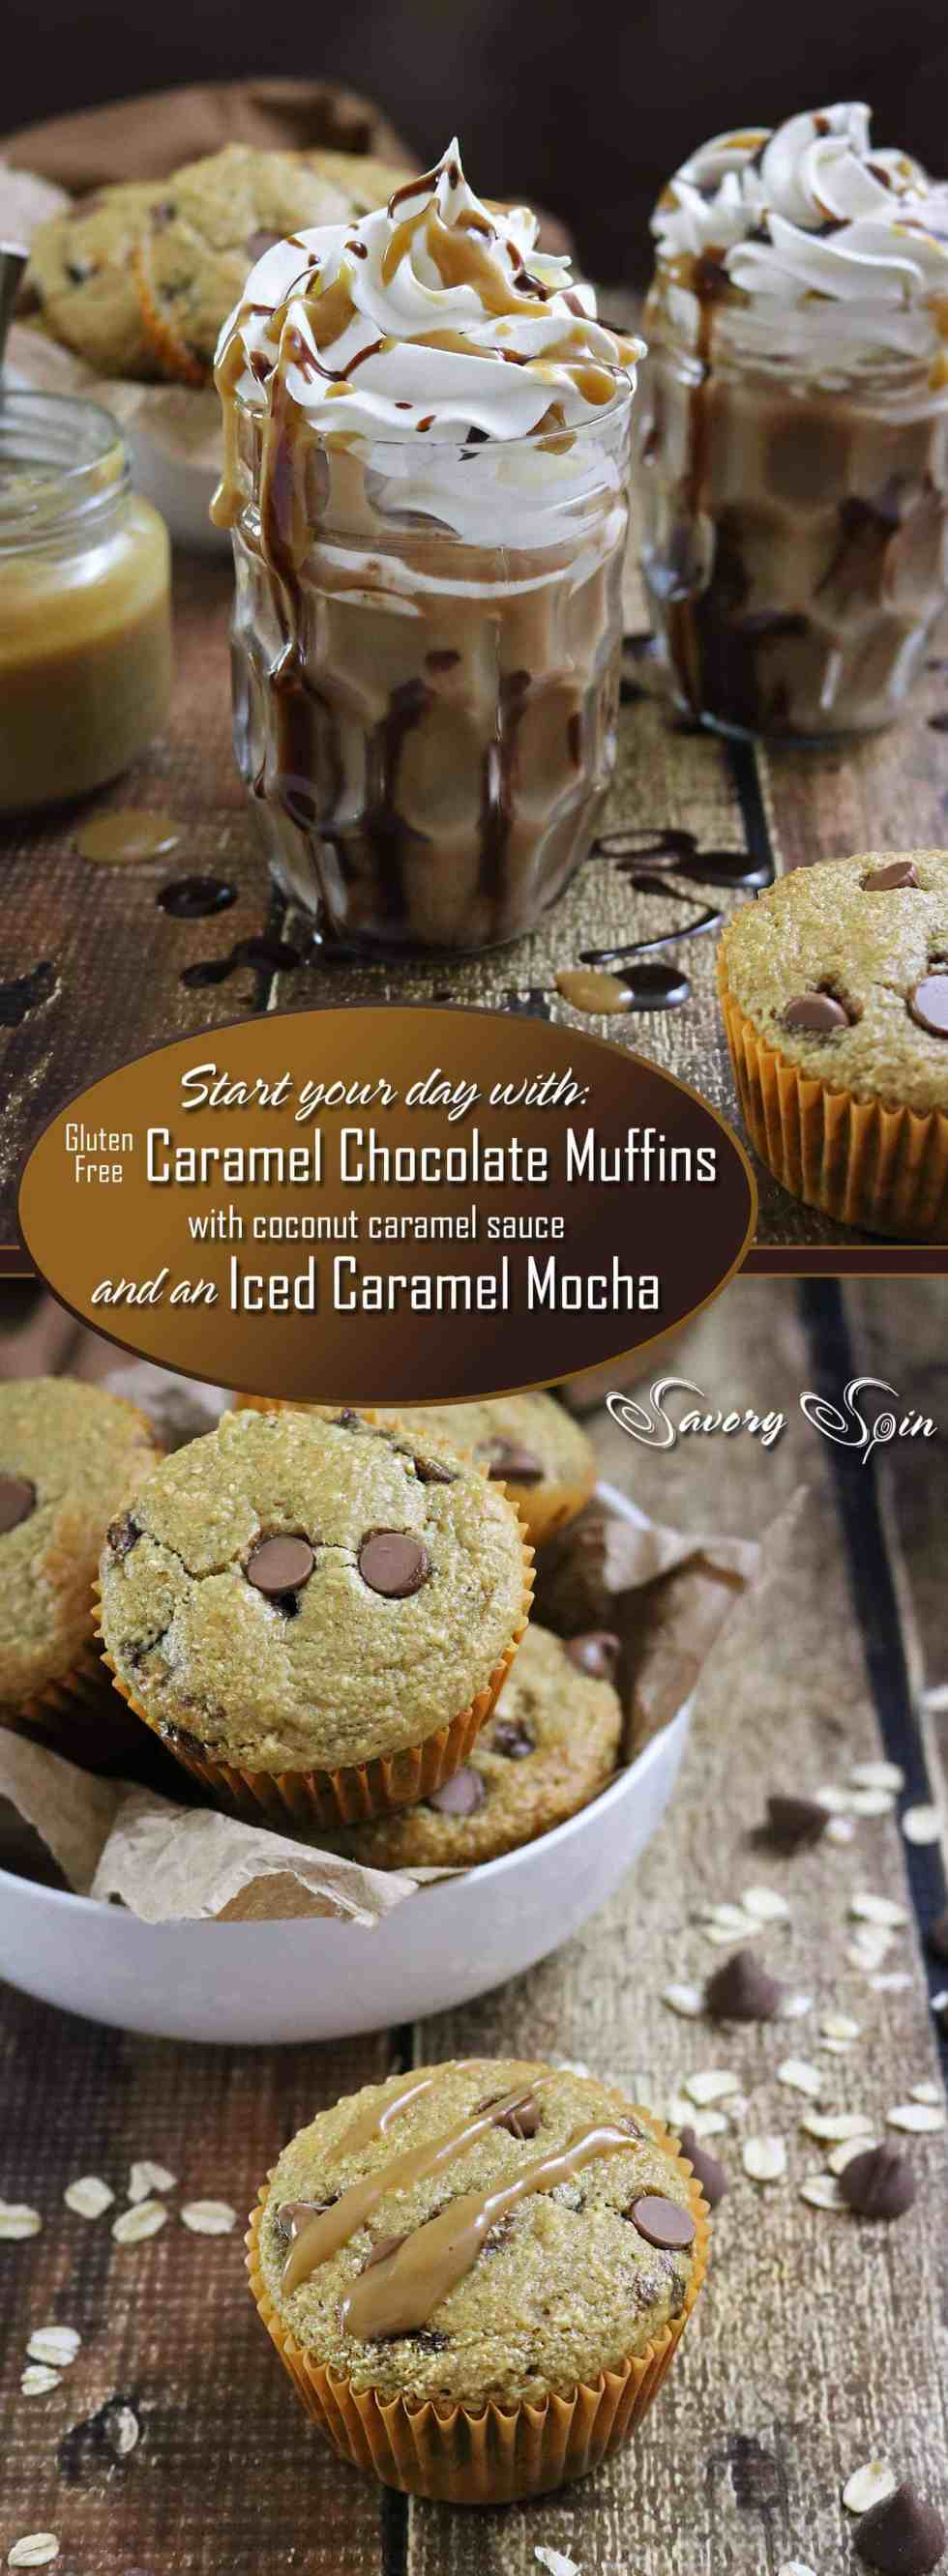 Gluten free Caramel Chocolate Muffins And Iced Caramel Mocha #SilkandSimplyPureCreamers #ad